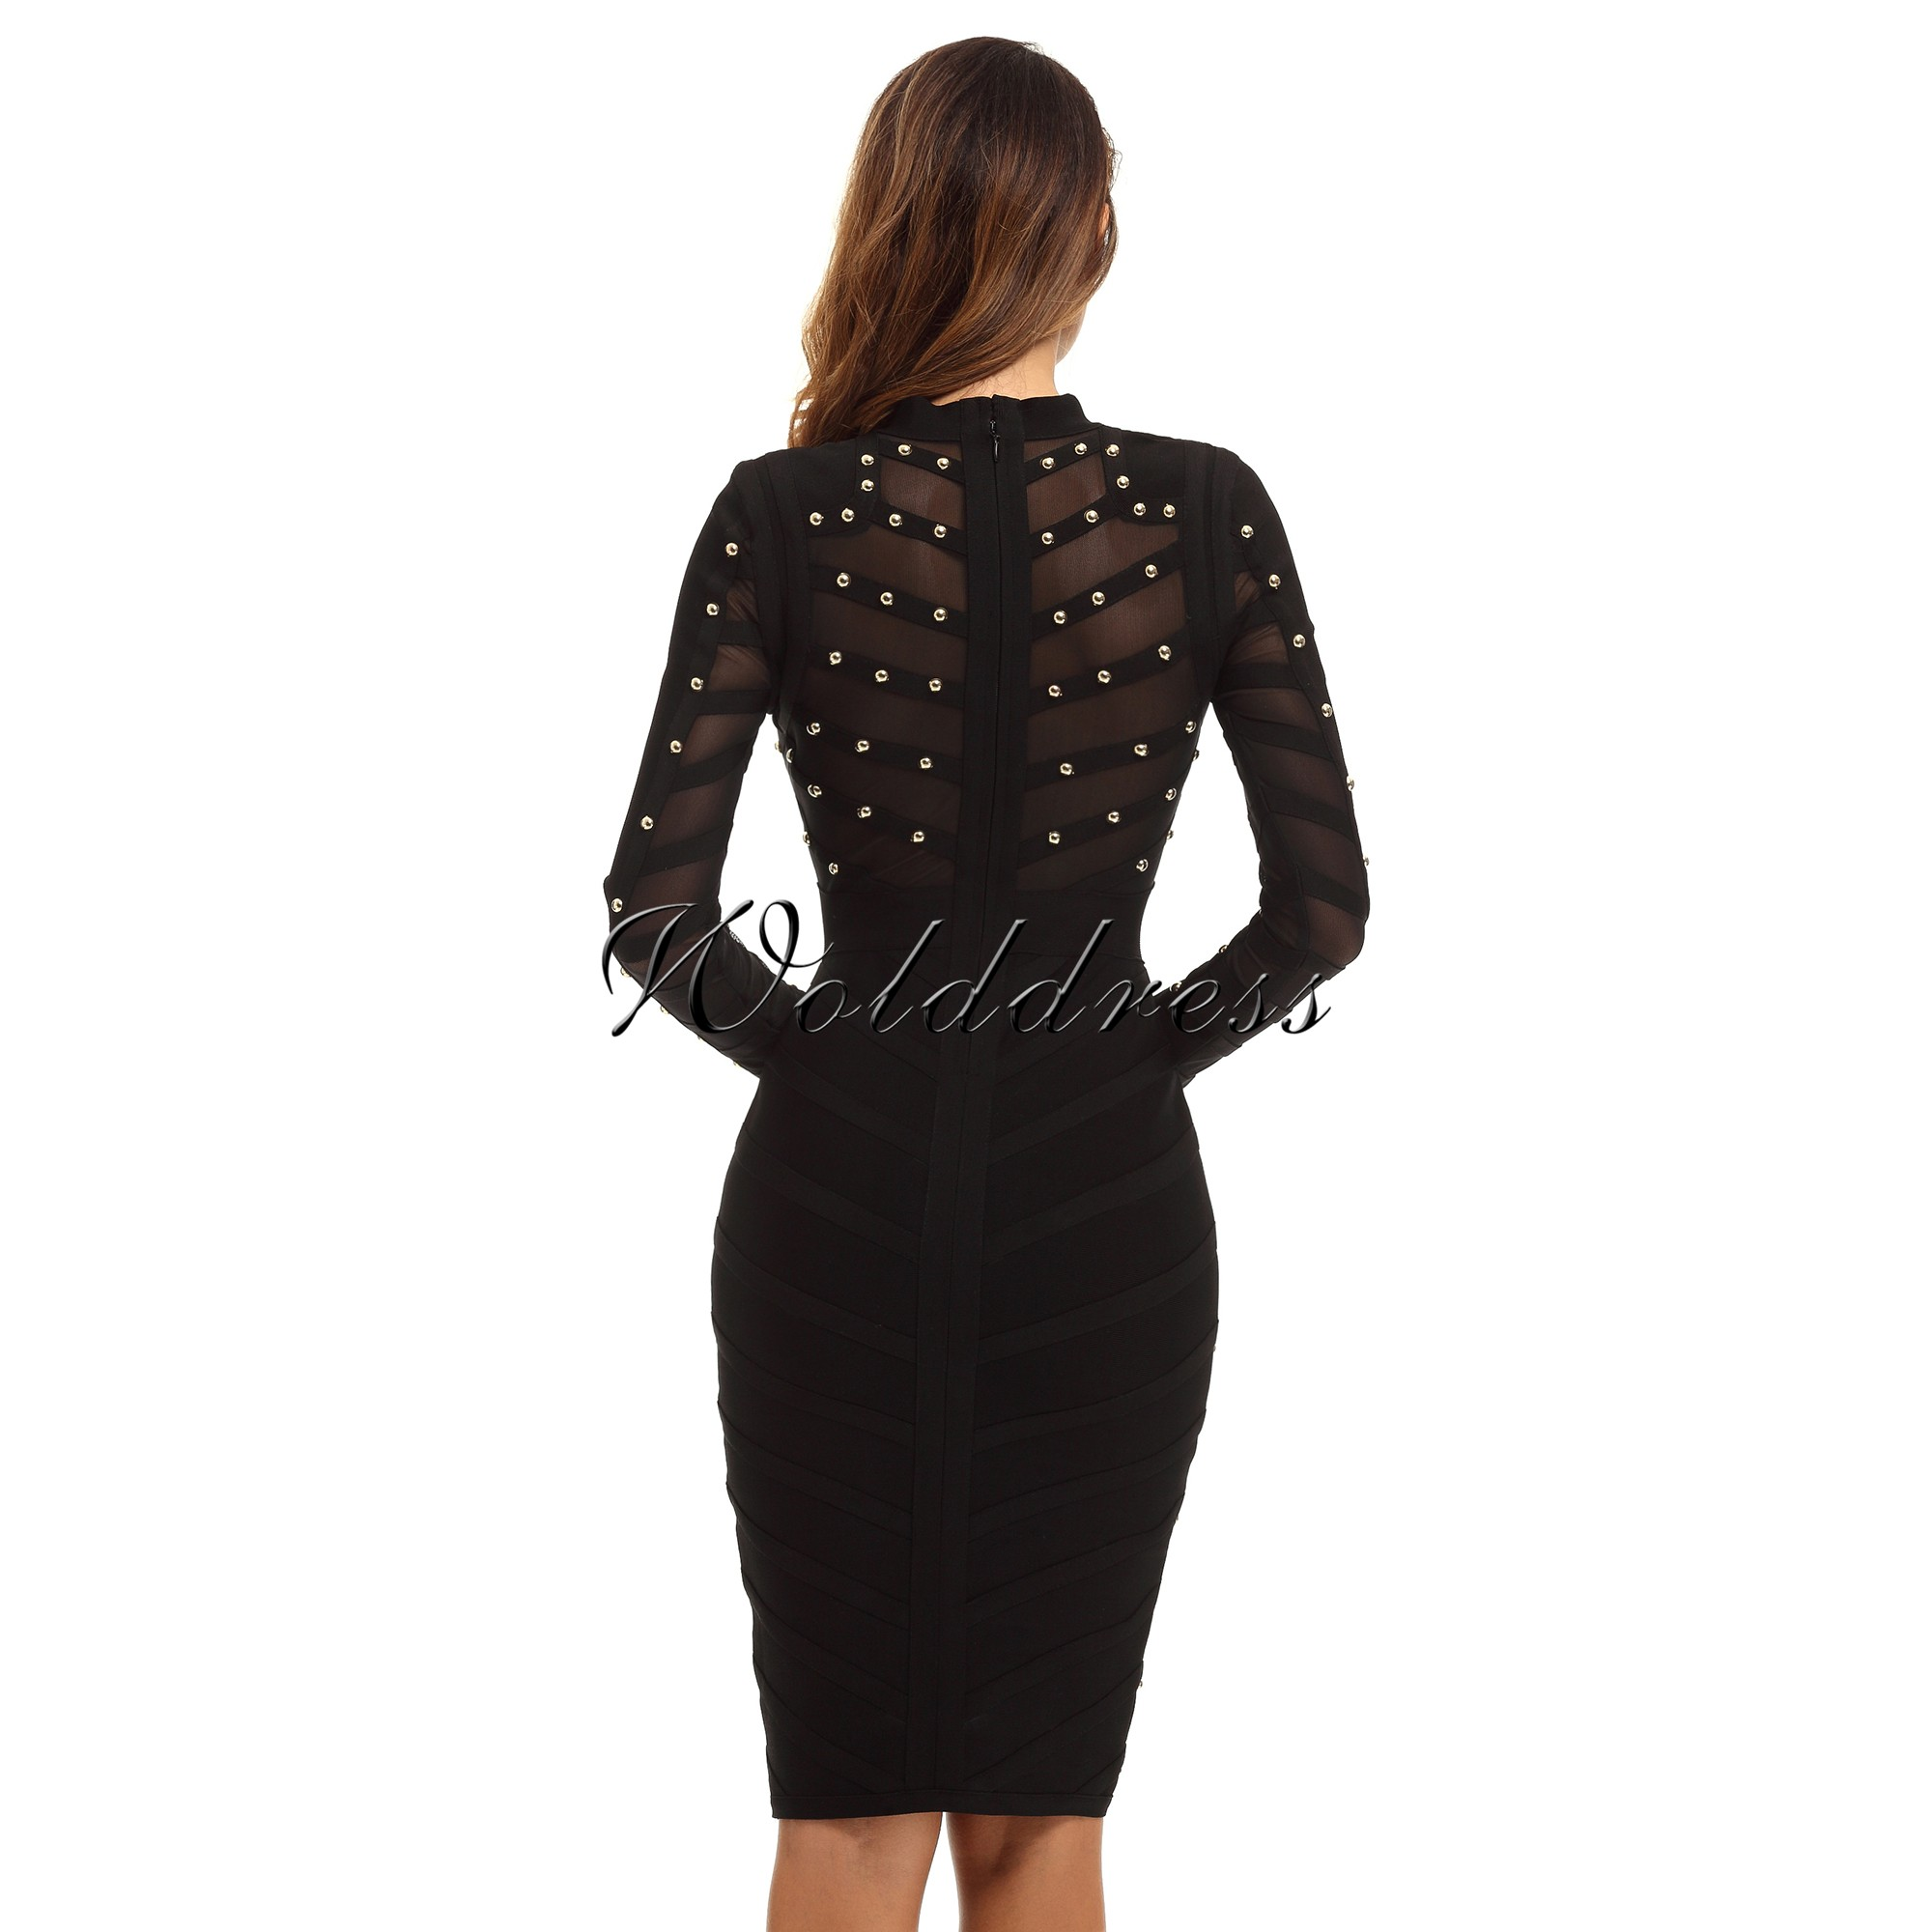 Round Neck Long Sleeve Mini Metal Studded Over Knee Length Black Perfect Bandage Dress With Sheer Mesh HN156-black